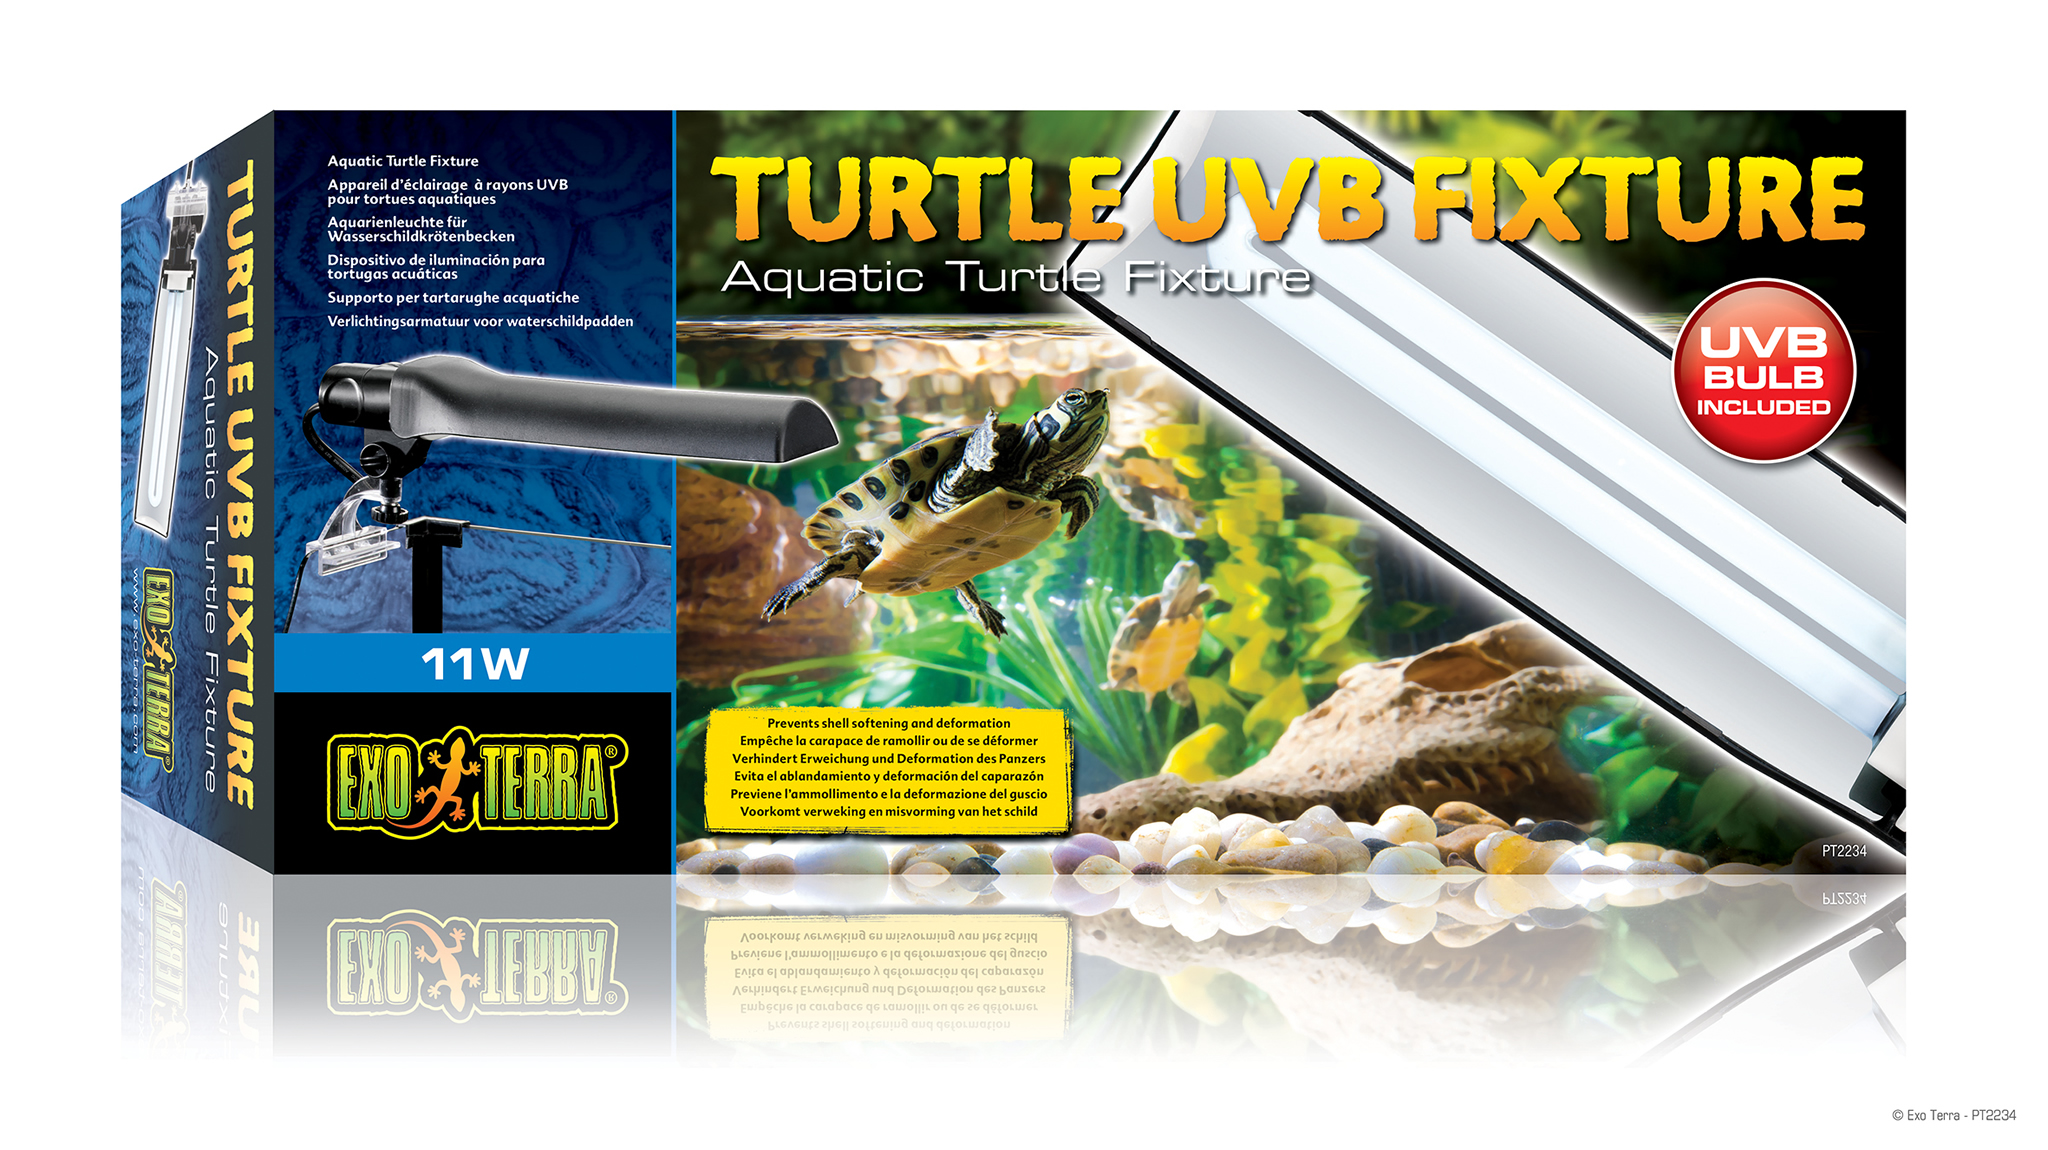 turtle tank uv light - Do You Need A Uvb Light For Turtles 2017 - Fish ...